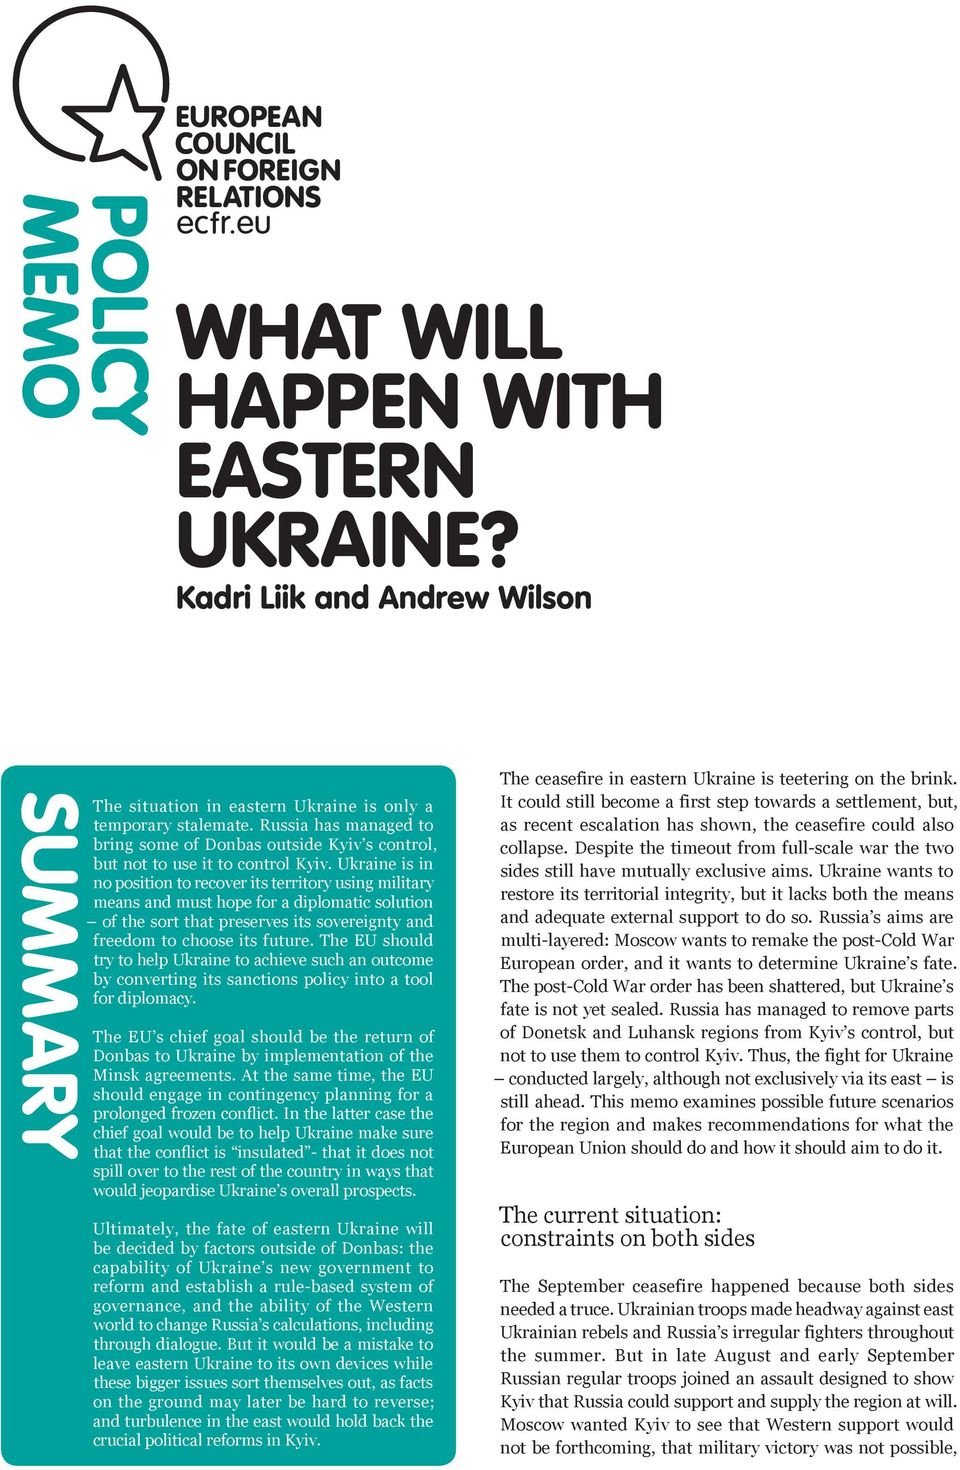 Ukraine is in no position to recover its territory using military means and must hope for a diplomatic solution of the sort that preserves its sovereignty and freedom to choose its future.